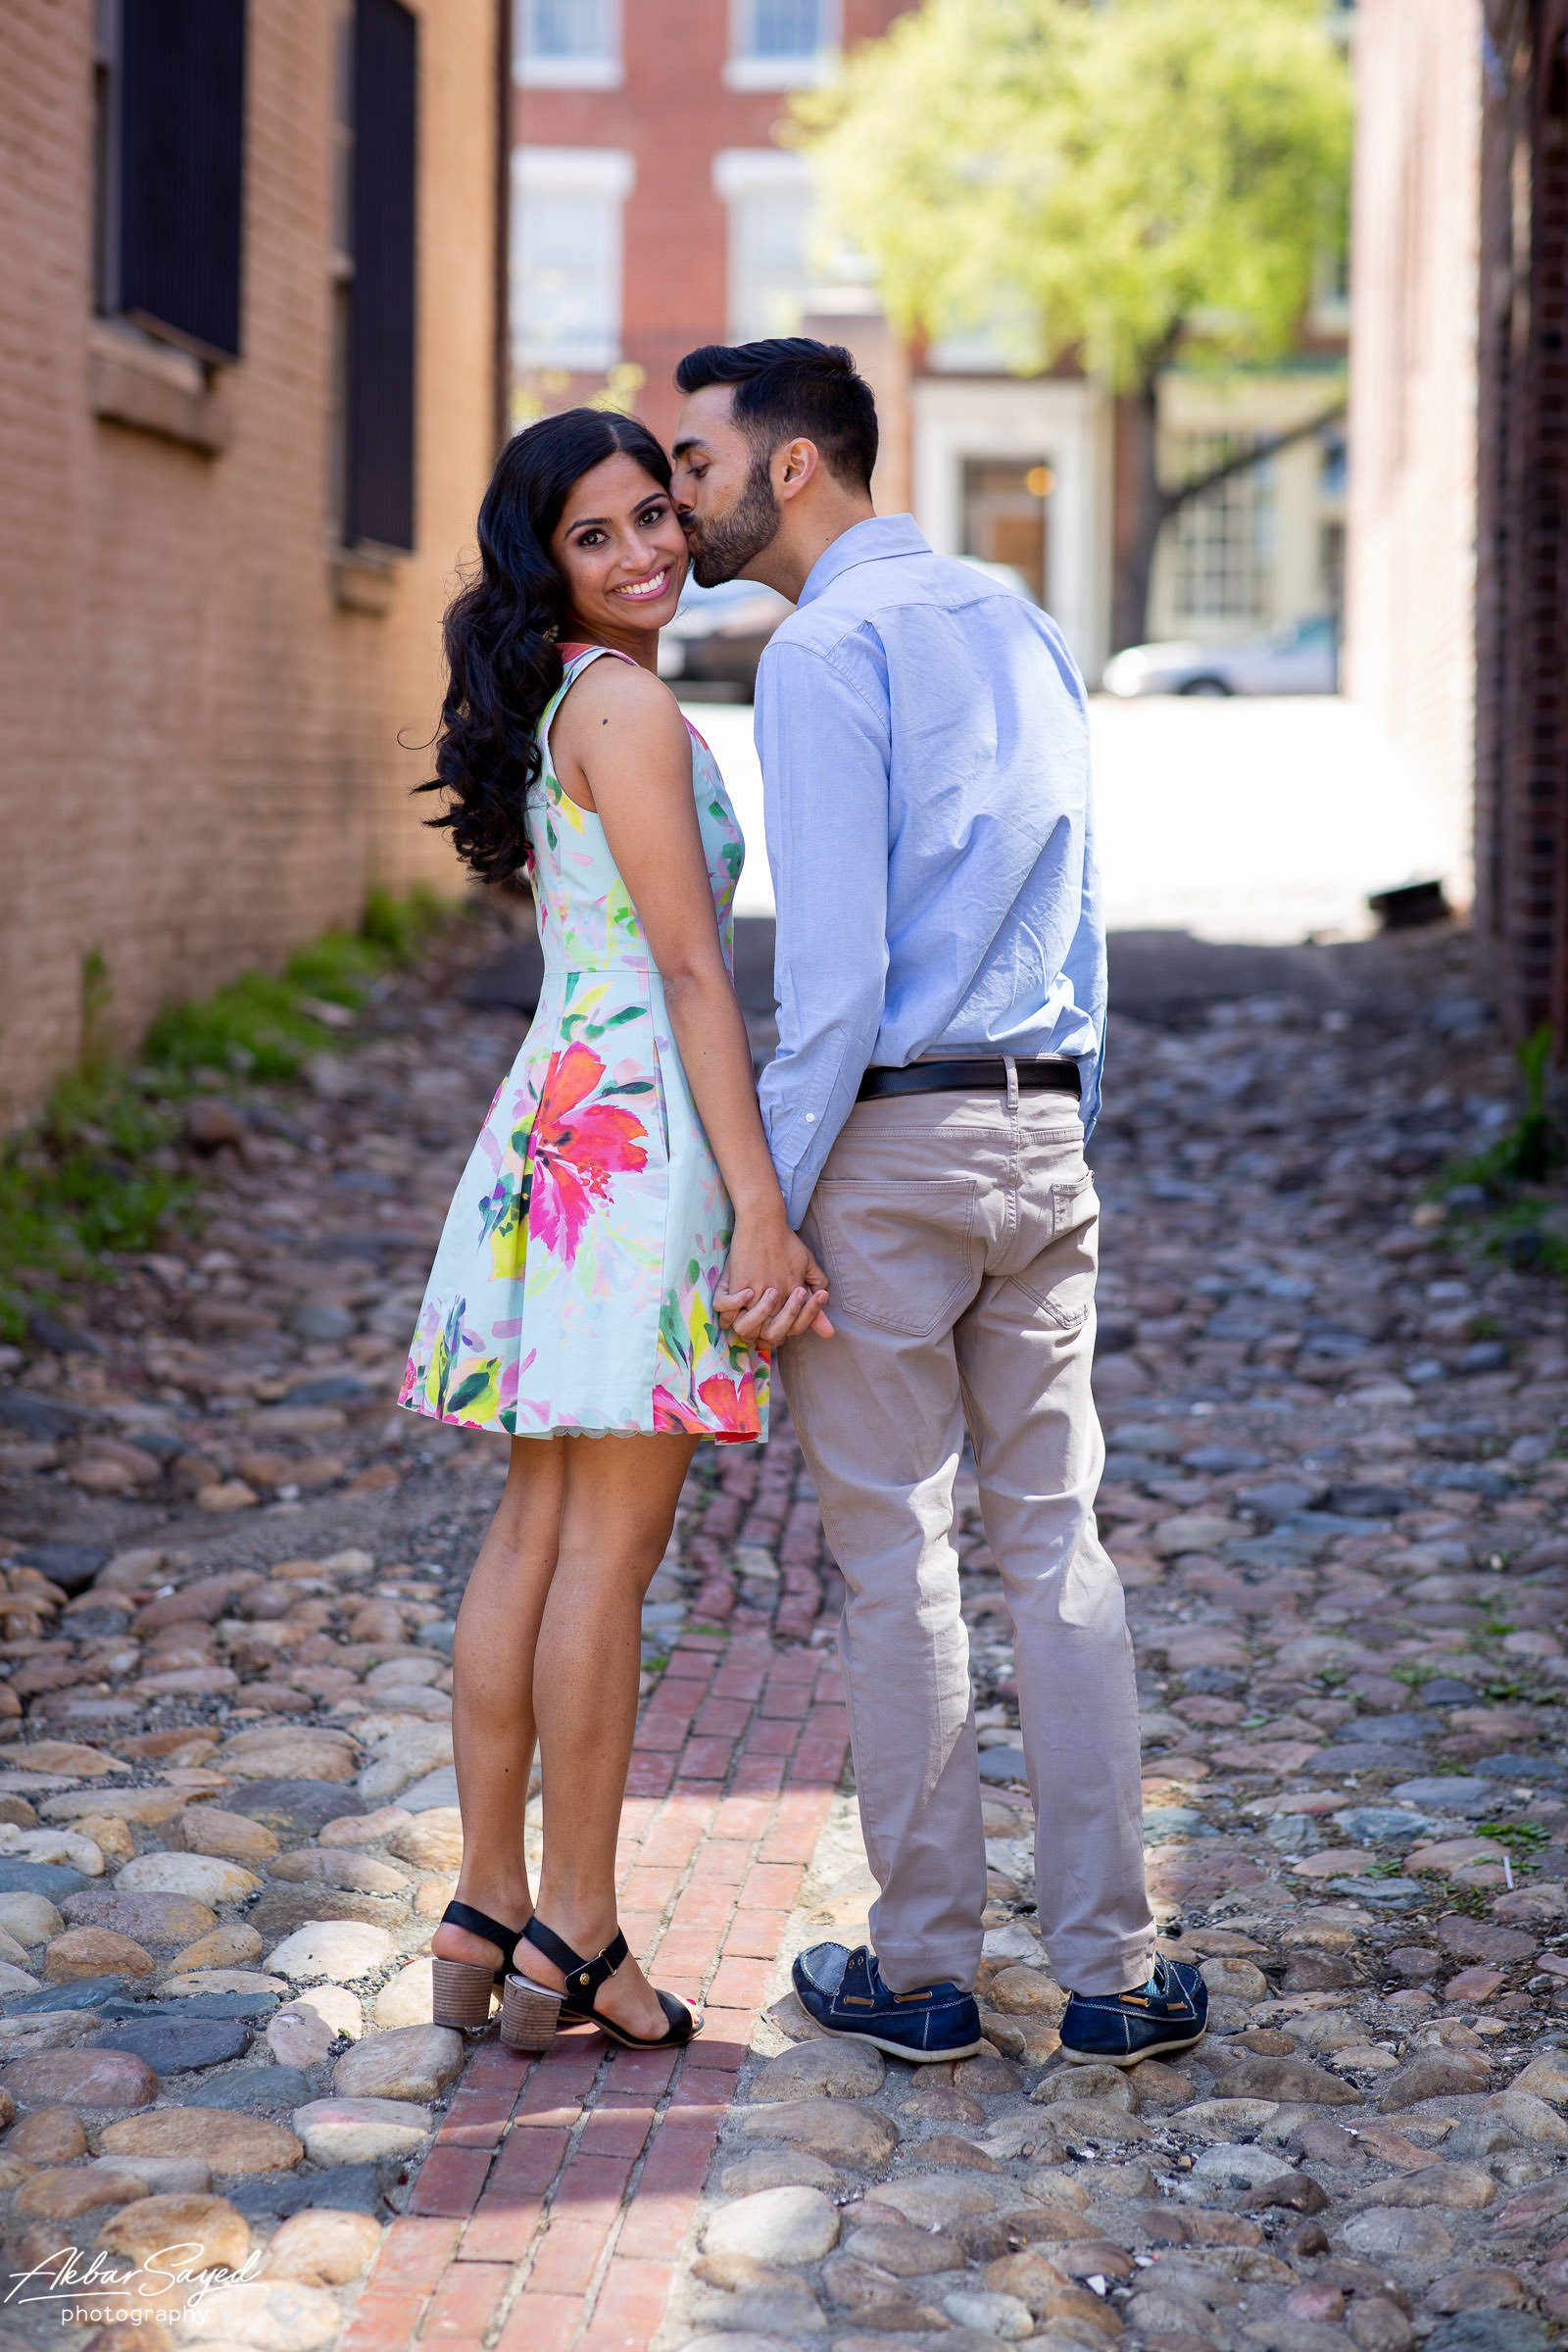 Old Town Alexandria engagement photo with an engaged Indian - American couple in a cobblestone alley.